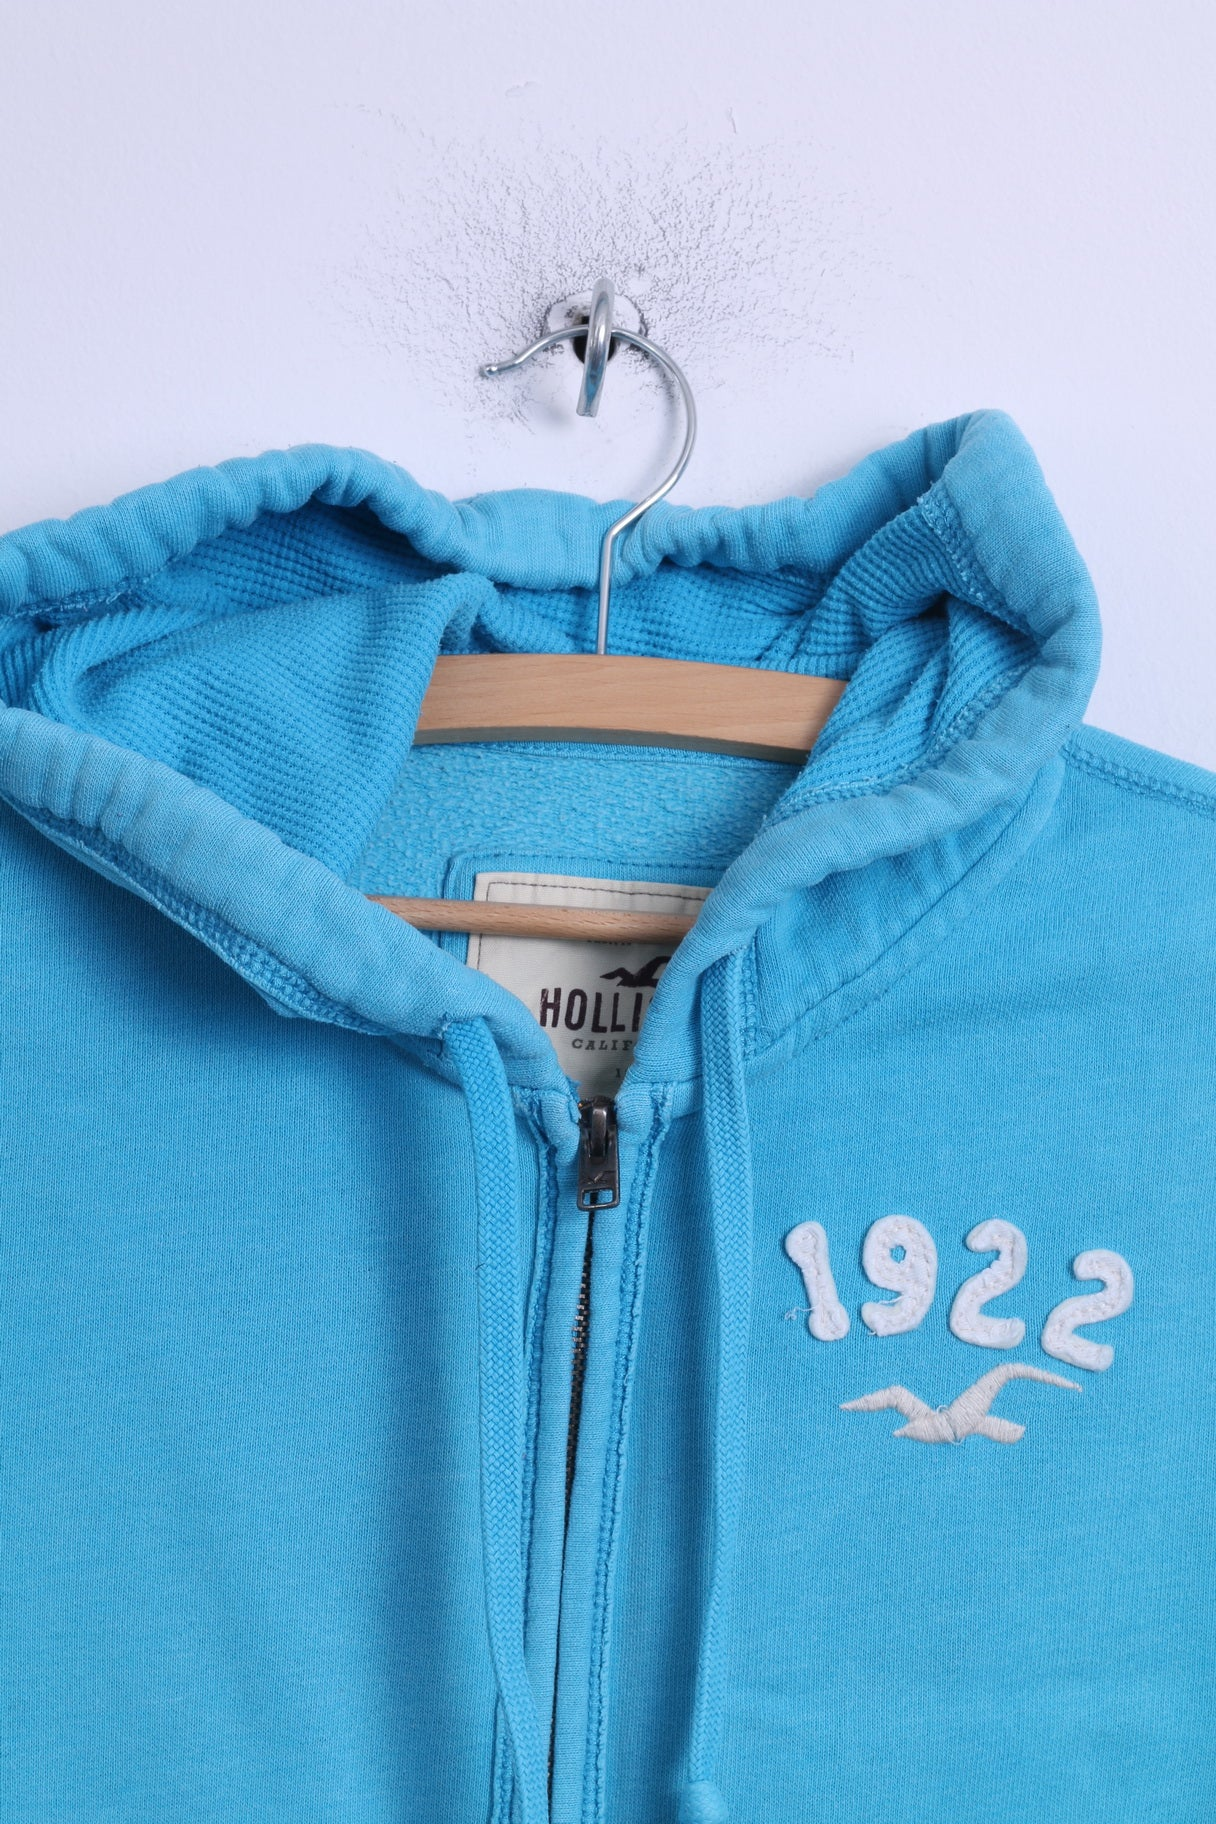 Hollister Womens Turquoise Blue Zip Up